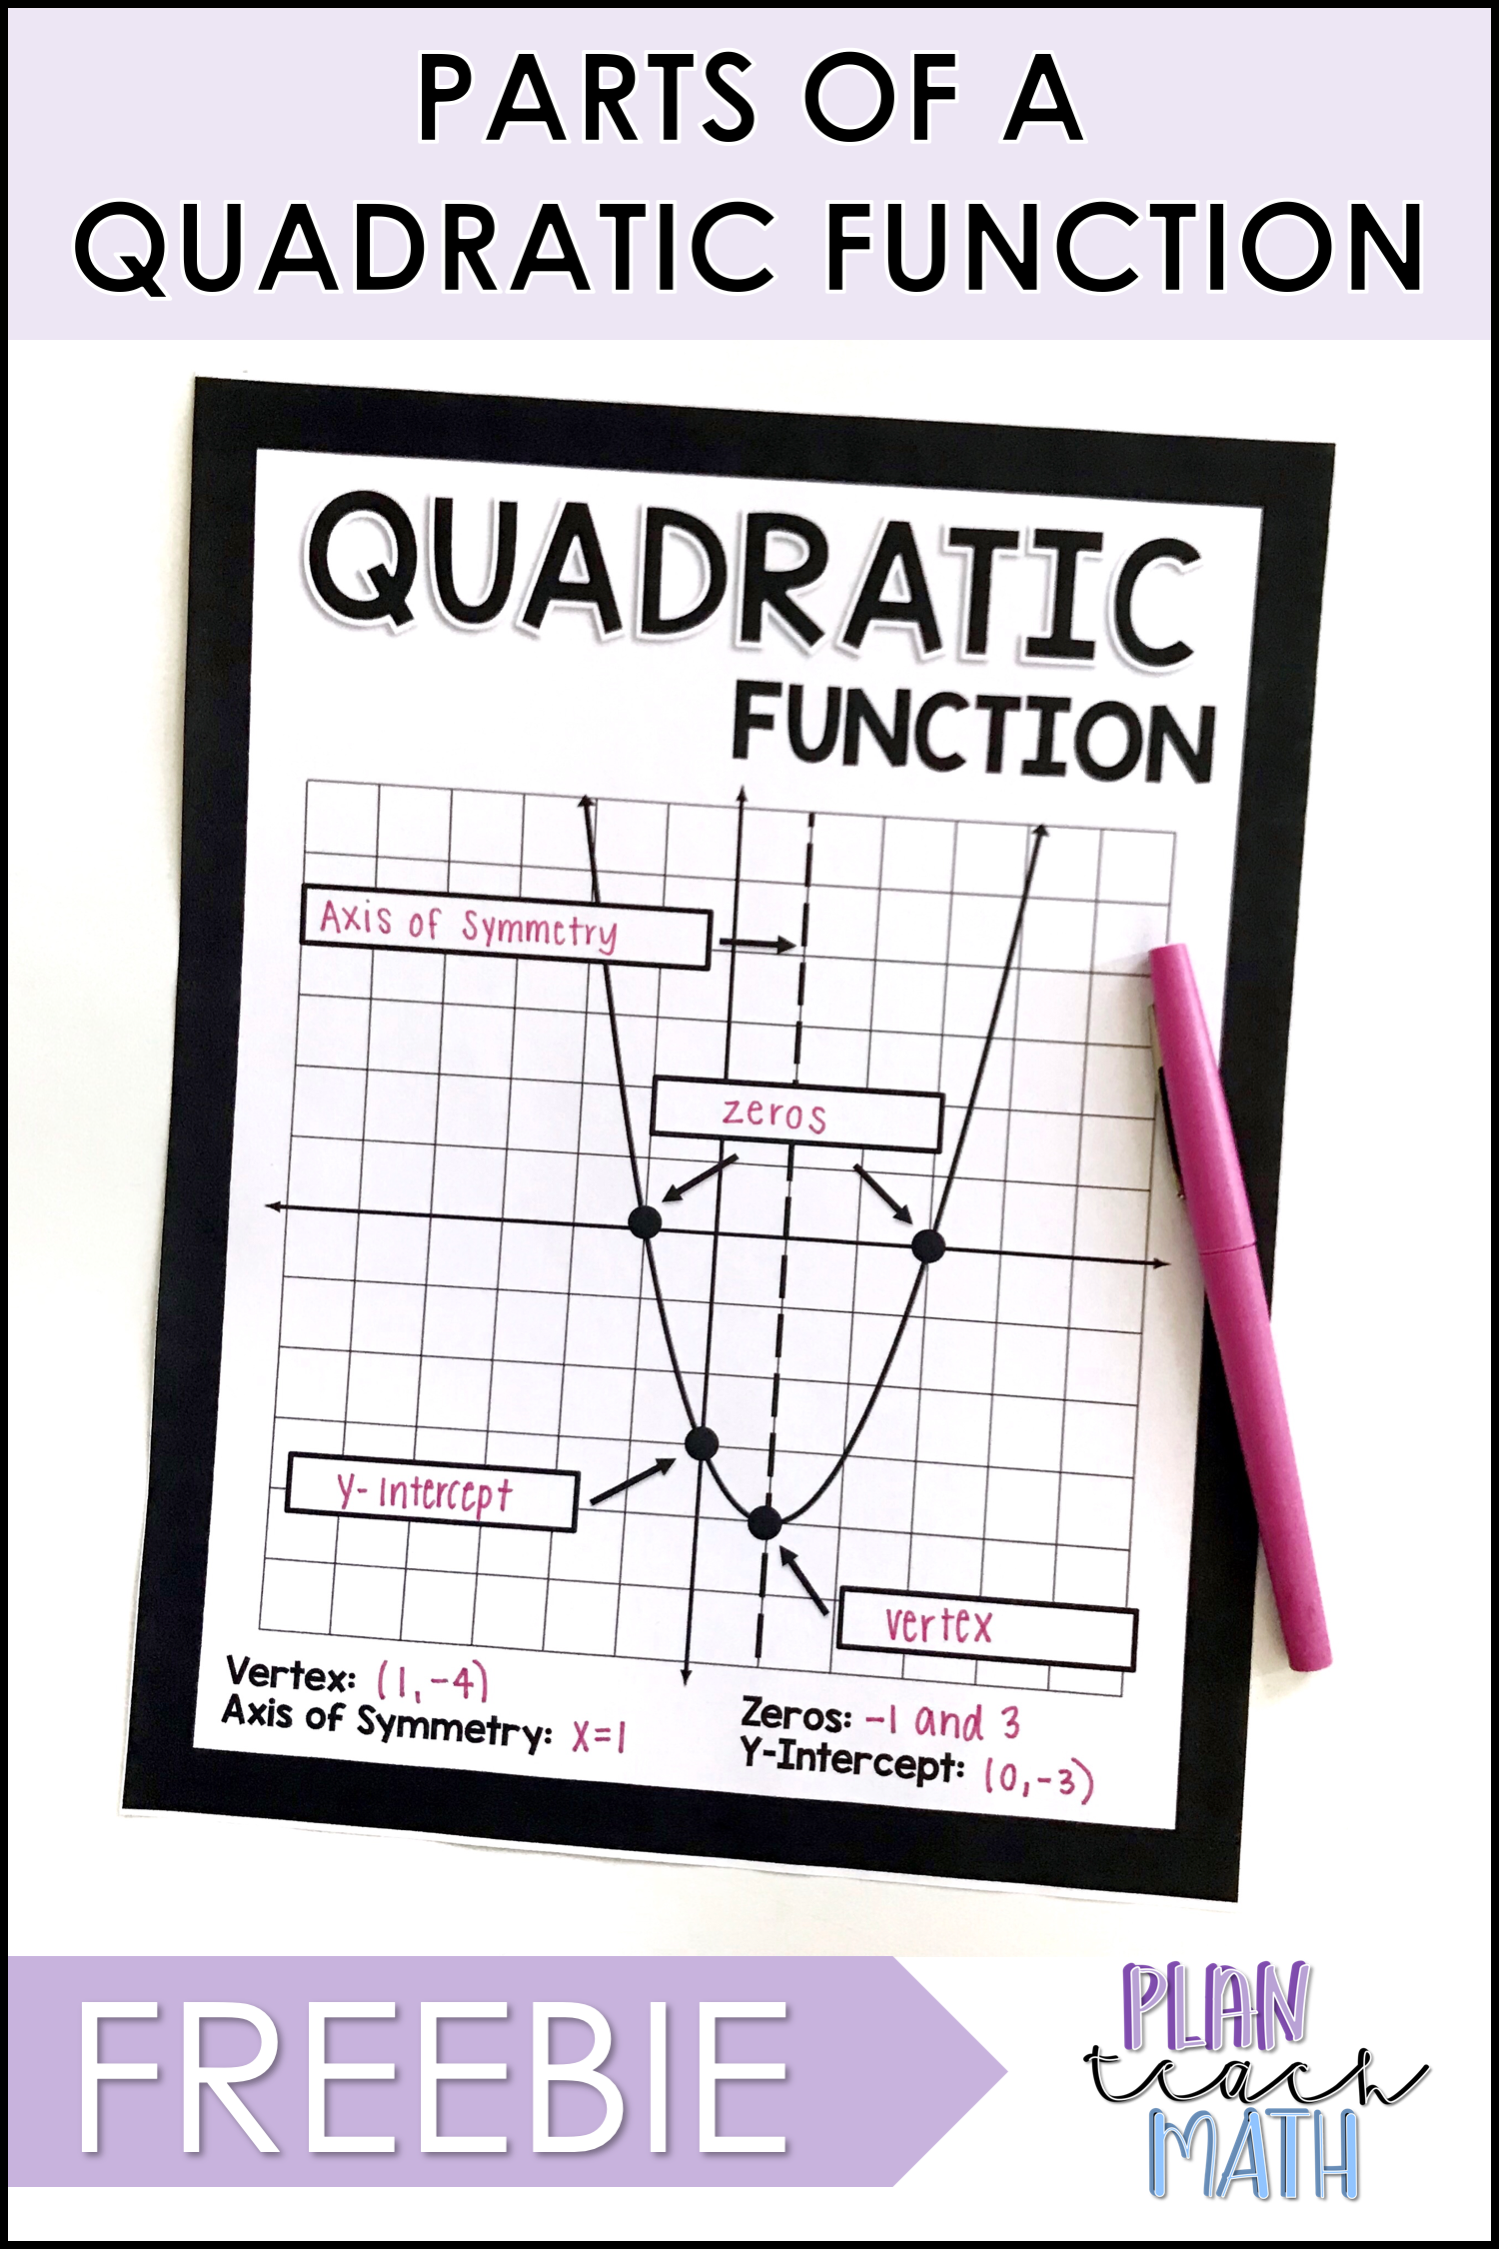 This Free Quadratics Reference Sheet Is Great To Have Students Fill Out When Learning About Quadratic Functions This Quadratics Math Freebie Algebra Resources [ 2249 x 1499 Pixel ]